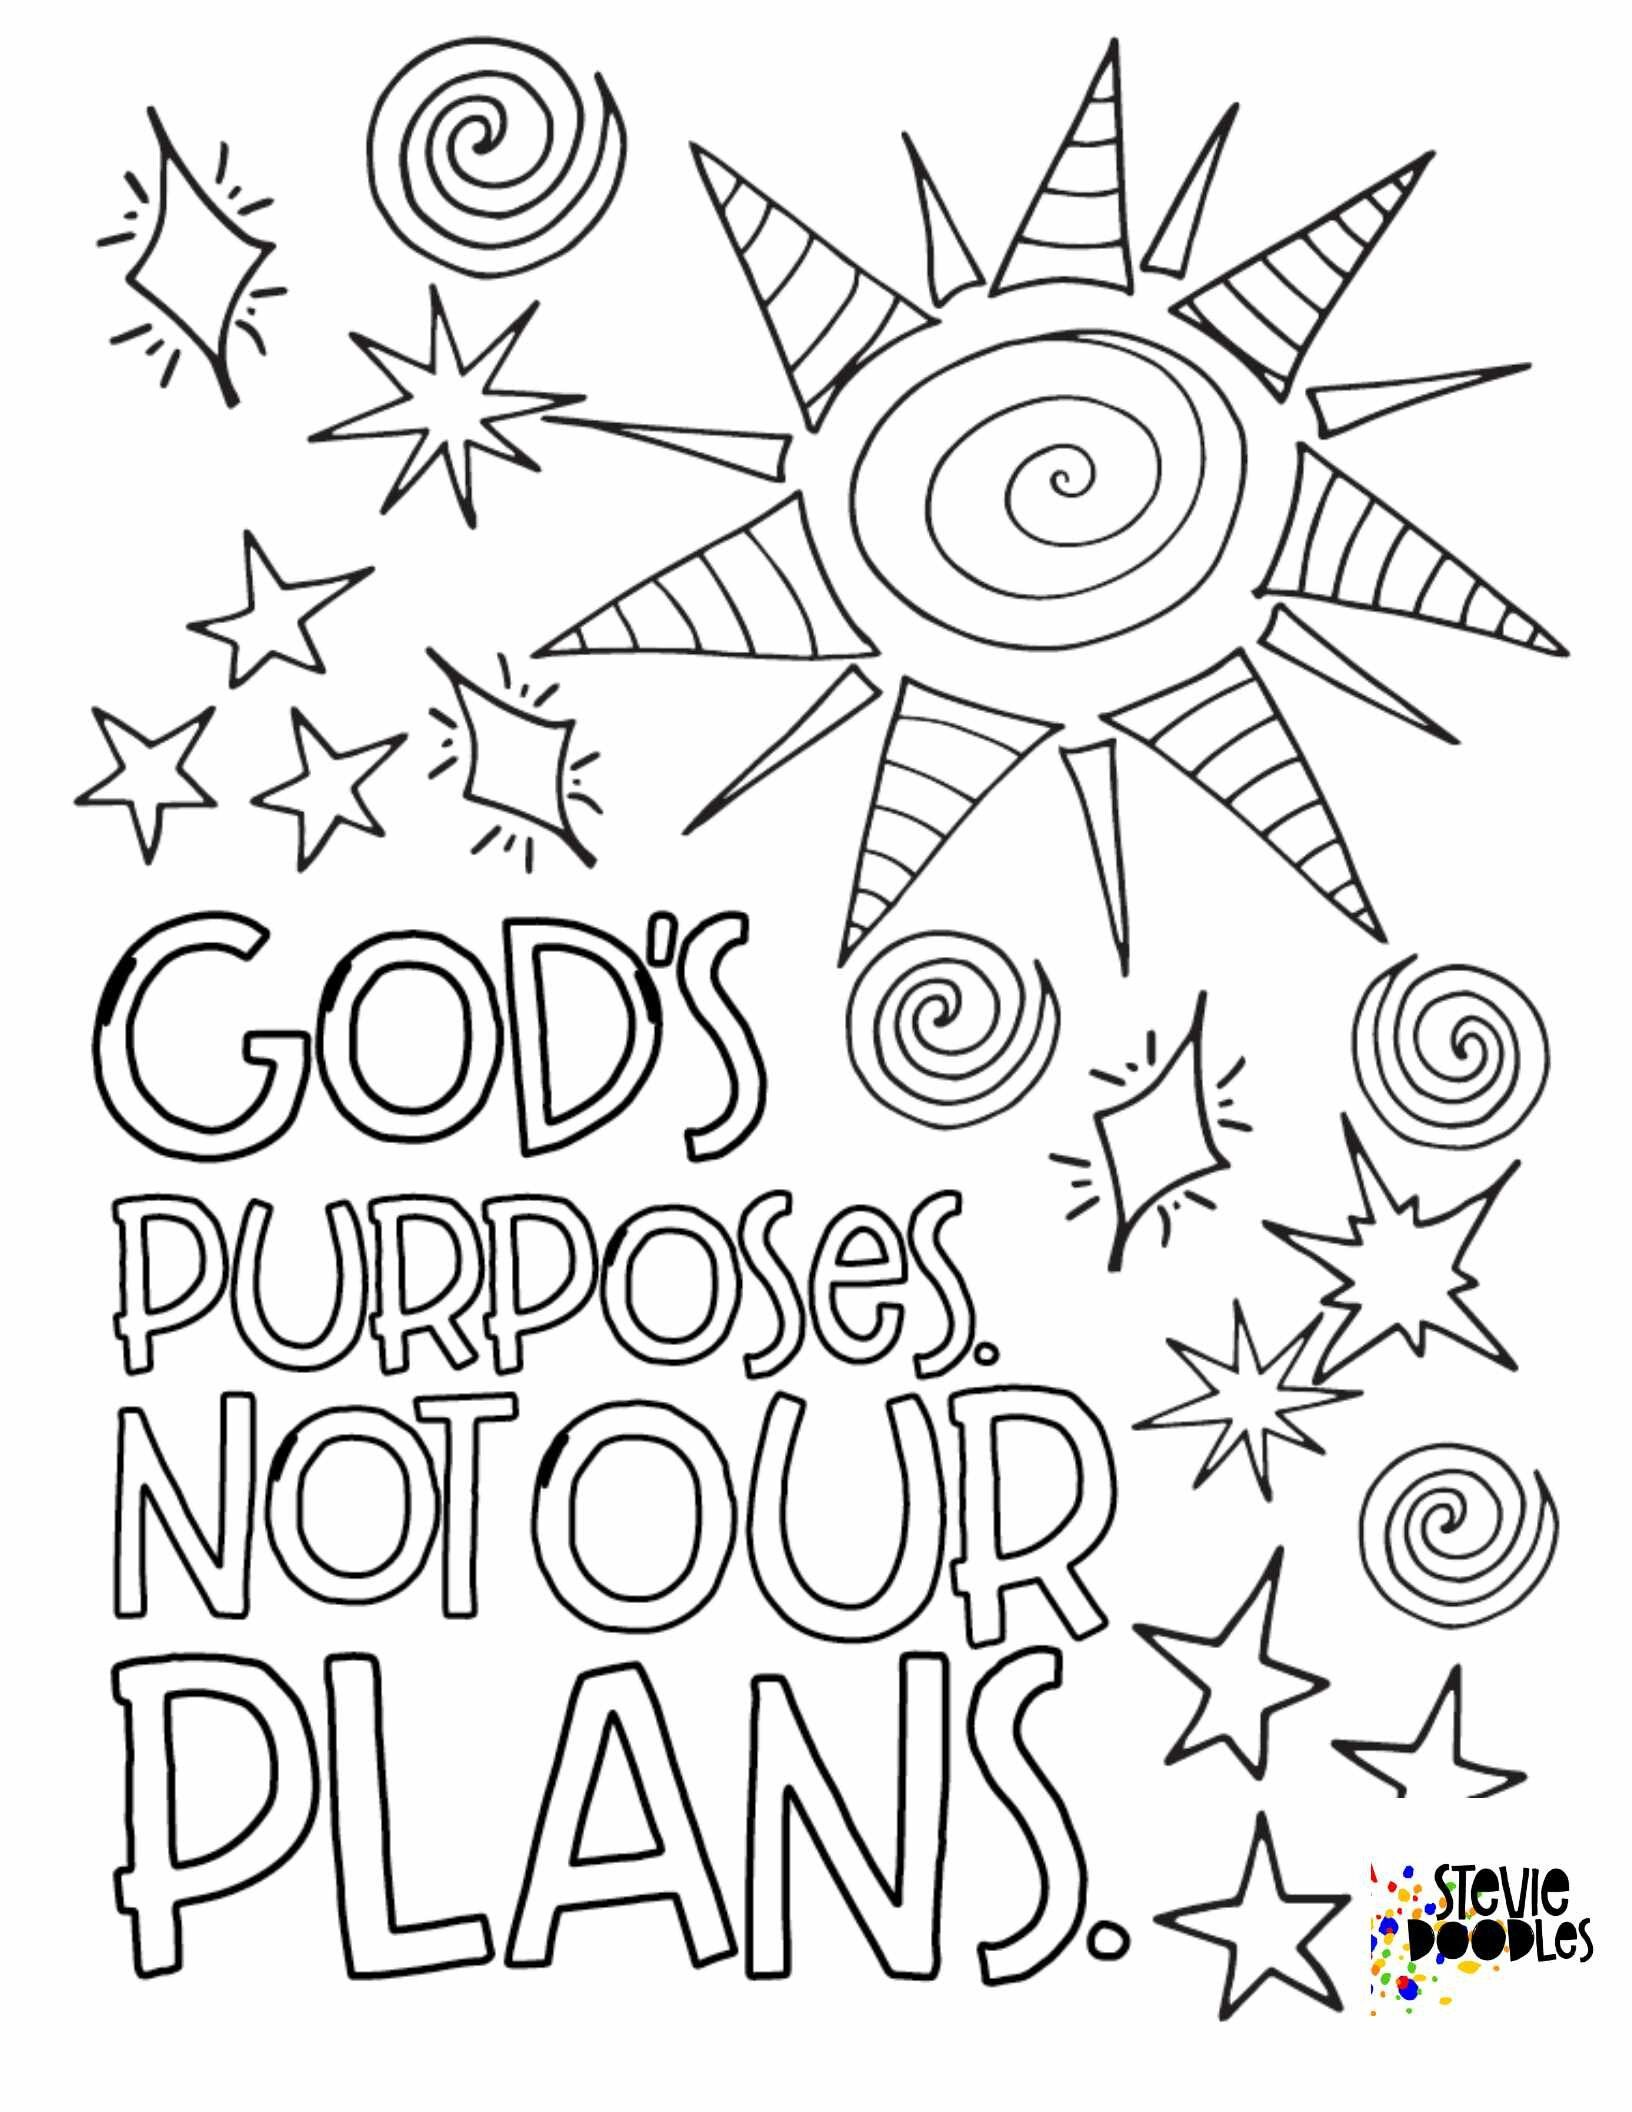 4 Free Coloring Pages Experiencing God Unit 2 Stevie Doodles Free Printable Coloring Pages Bible Verse Coloring Page Free Coloring Pages